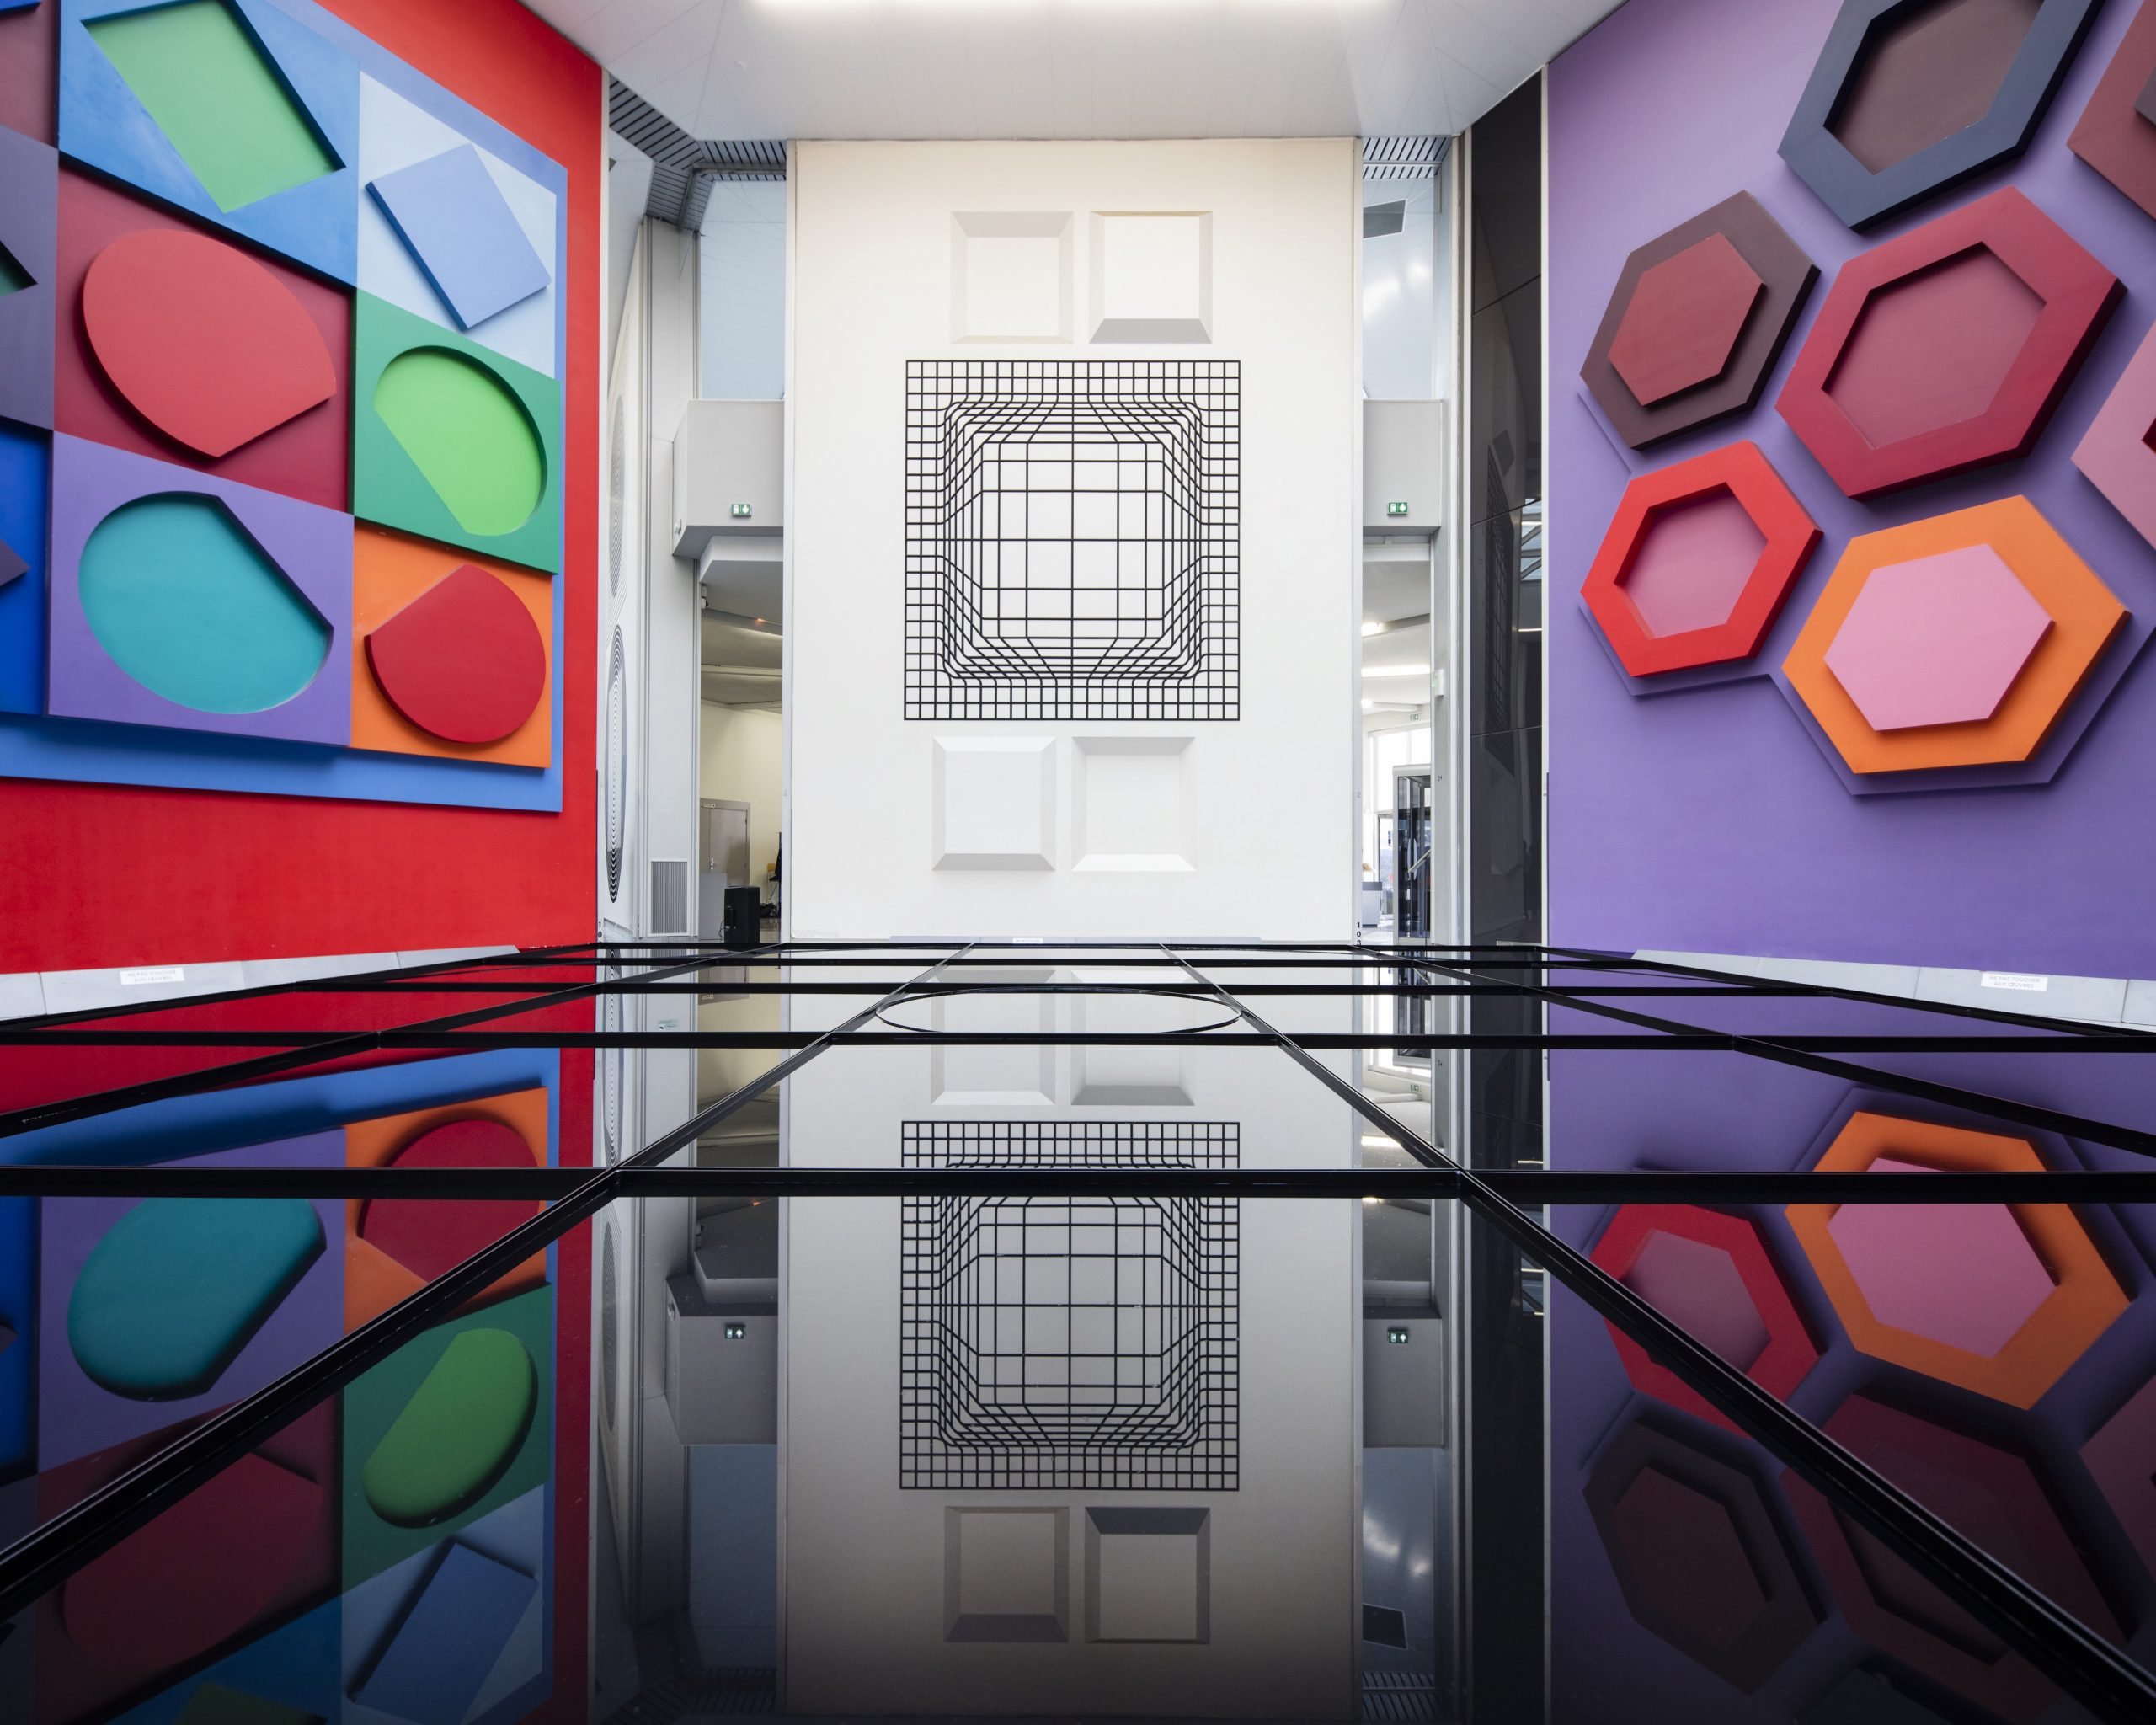 https://www.fondationvasarely.org/wp-content/uploads/2021/05/6-scaled.jpg